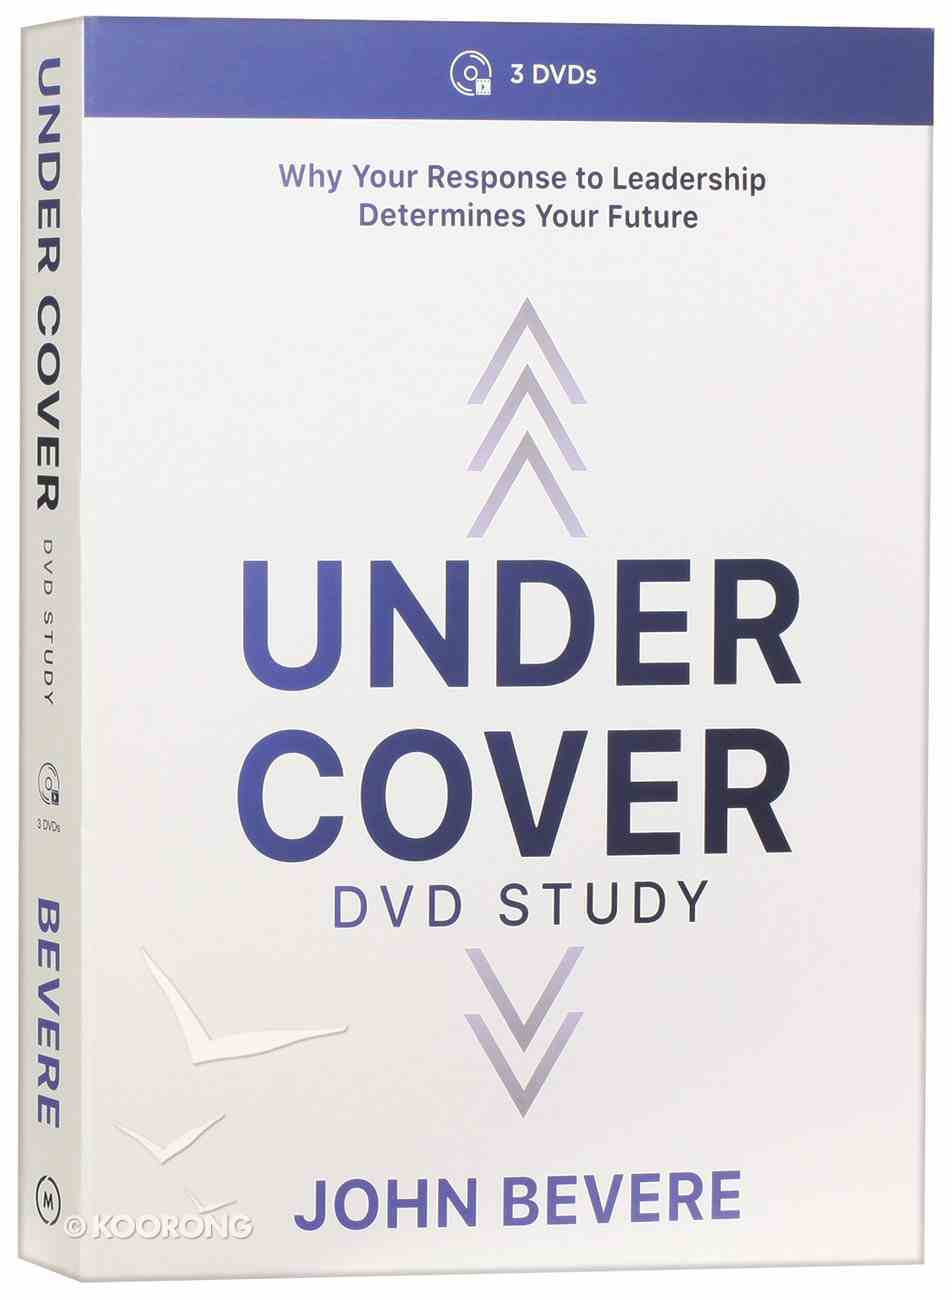 Under Cover: Includes 6 Video Lessons From John Bevere & 5 Video Lessons From Sons & Daughters (Dvd) DVD